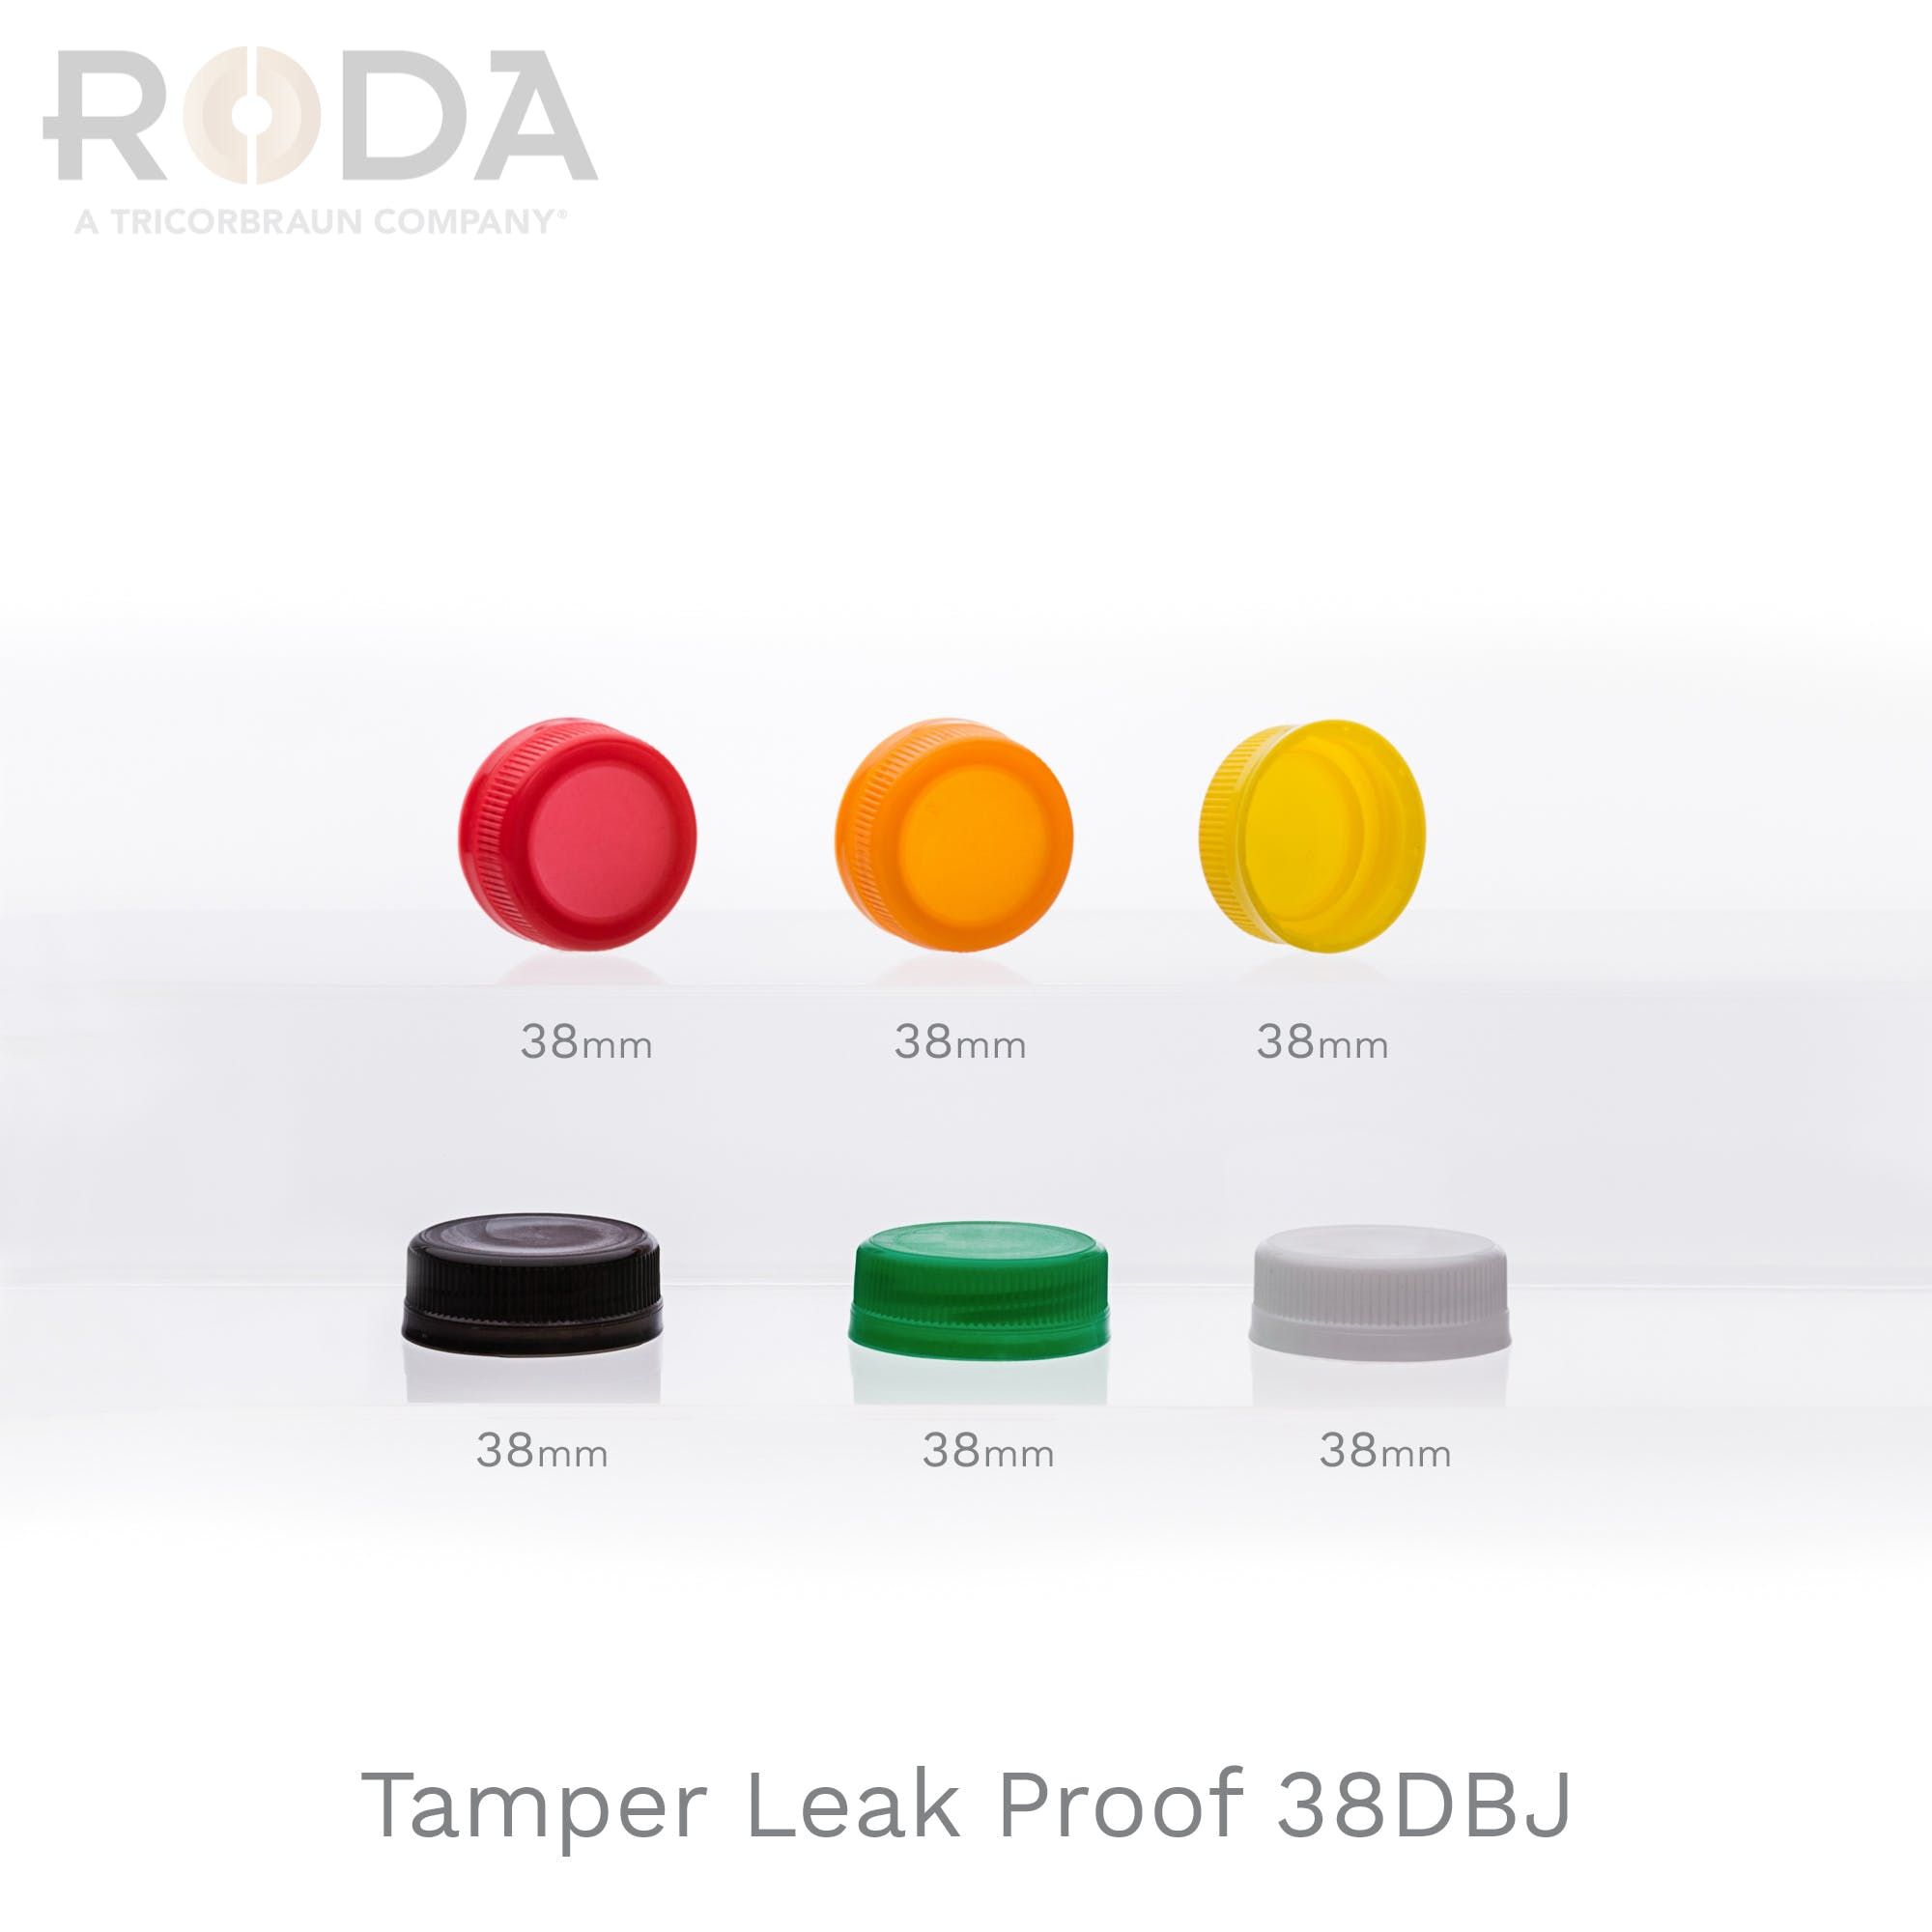 Tamper Leak Proof 38DBJ